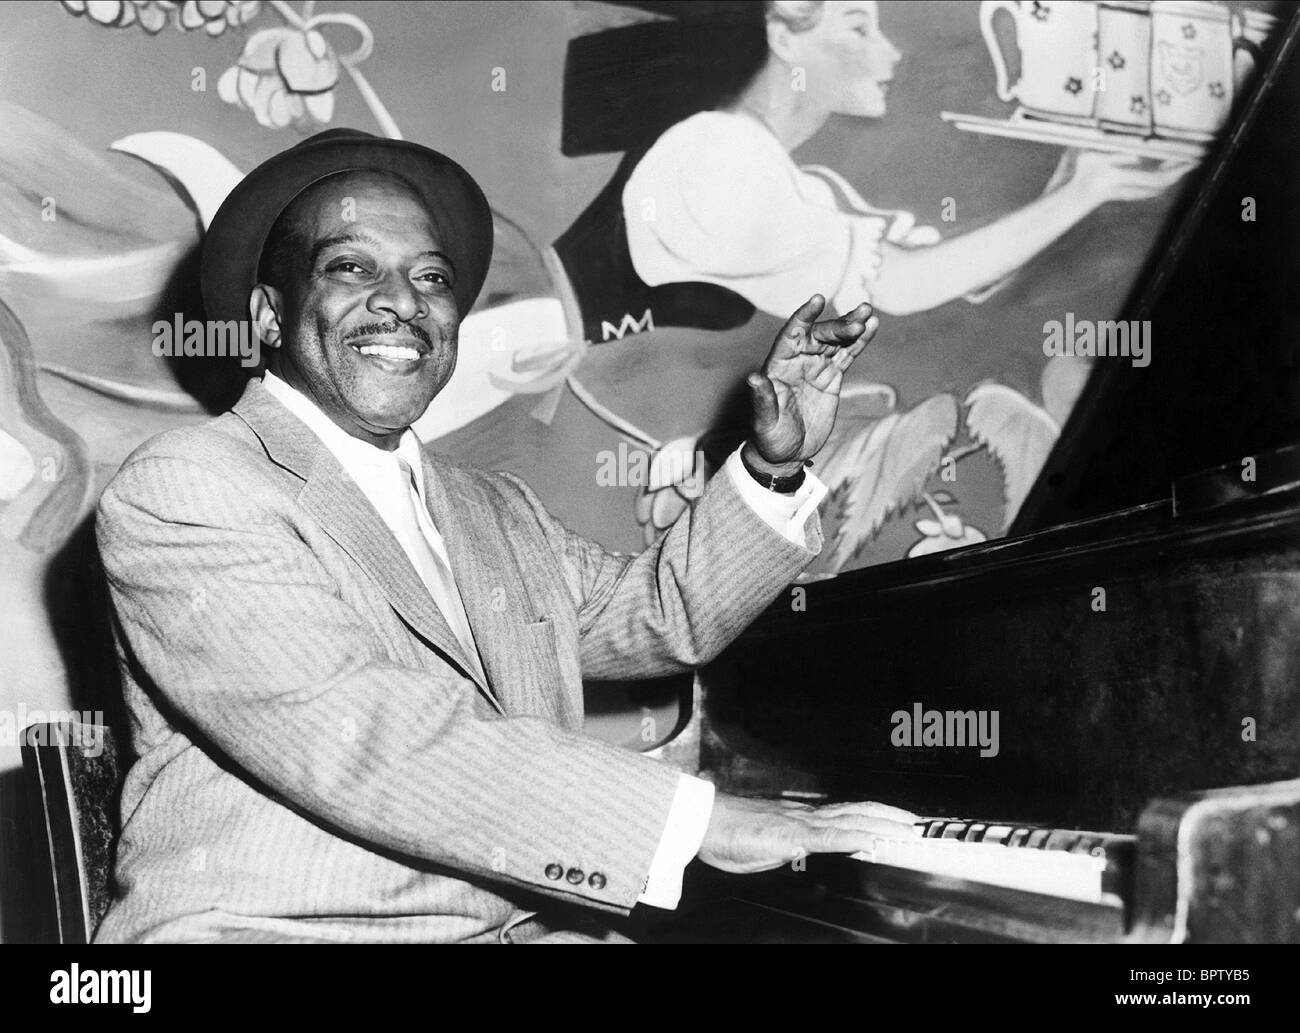 COUNT BASIE JAZZ MUSICIAN (1973) - Stock Image